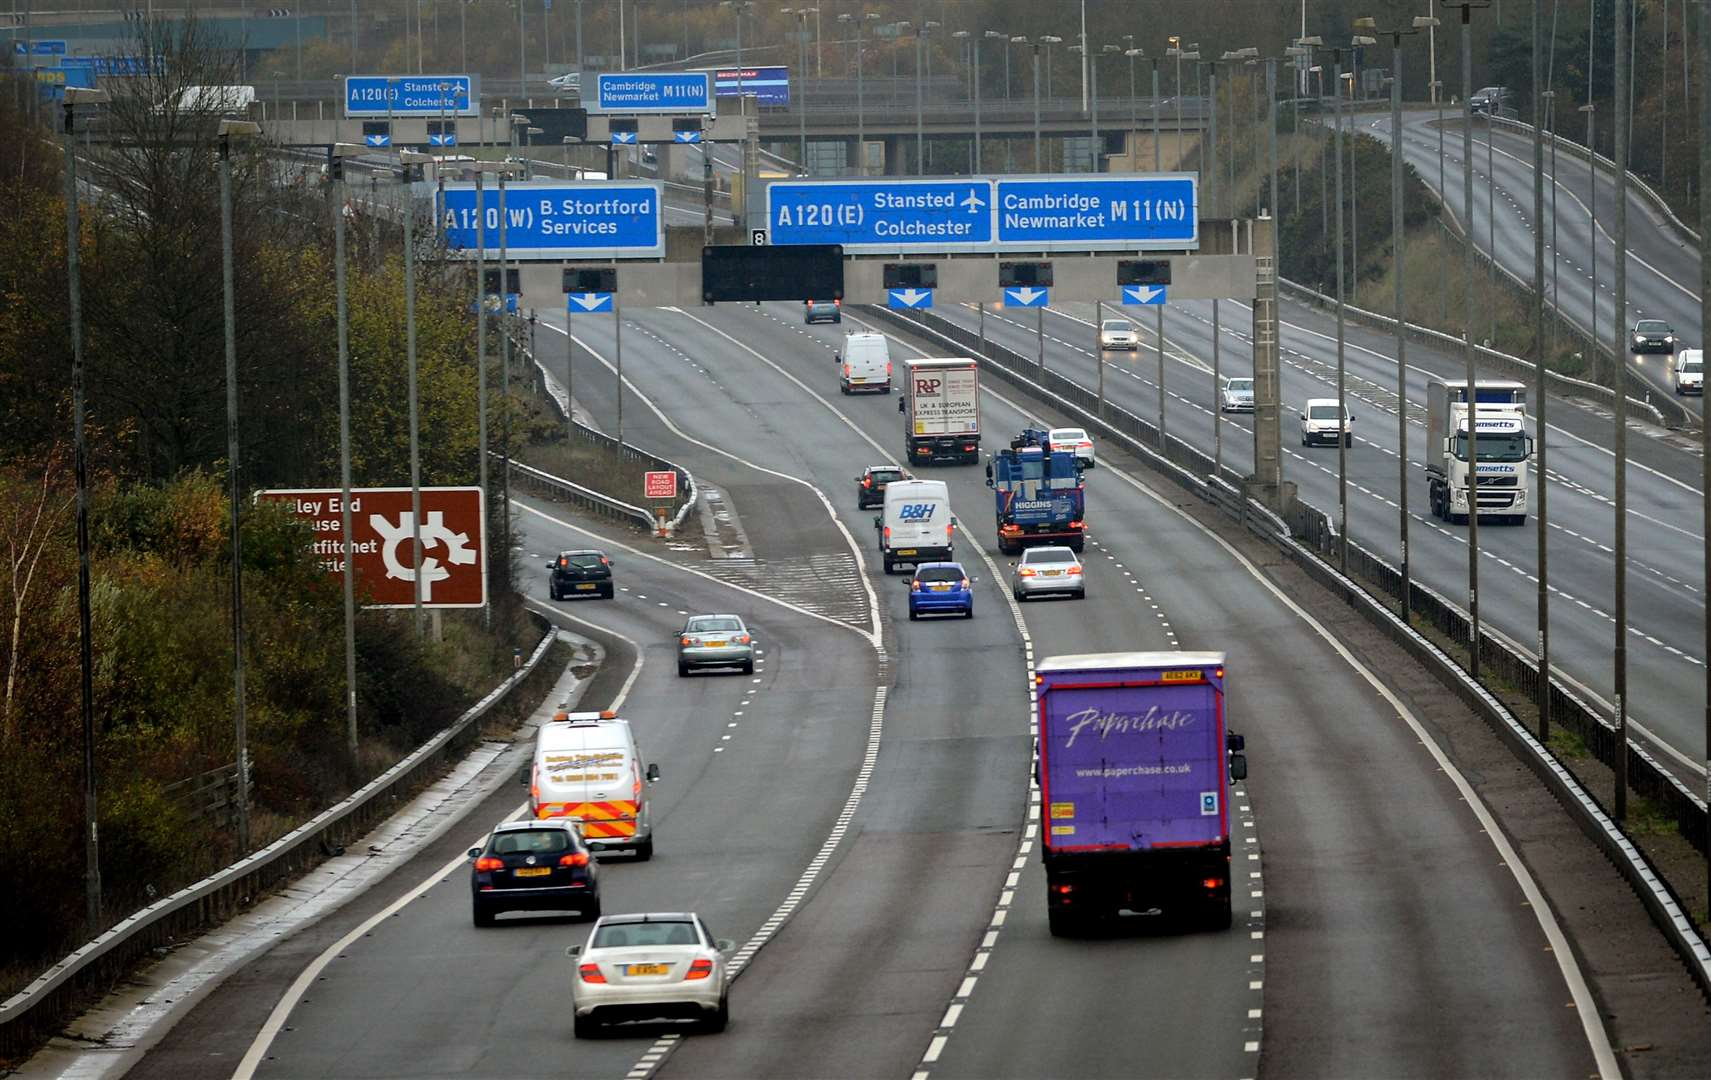 BMW owner admits driving on hard shoulder of M11 before crash with Mini